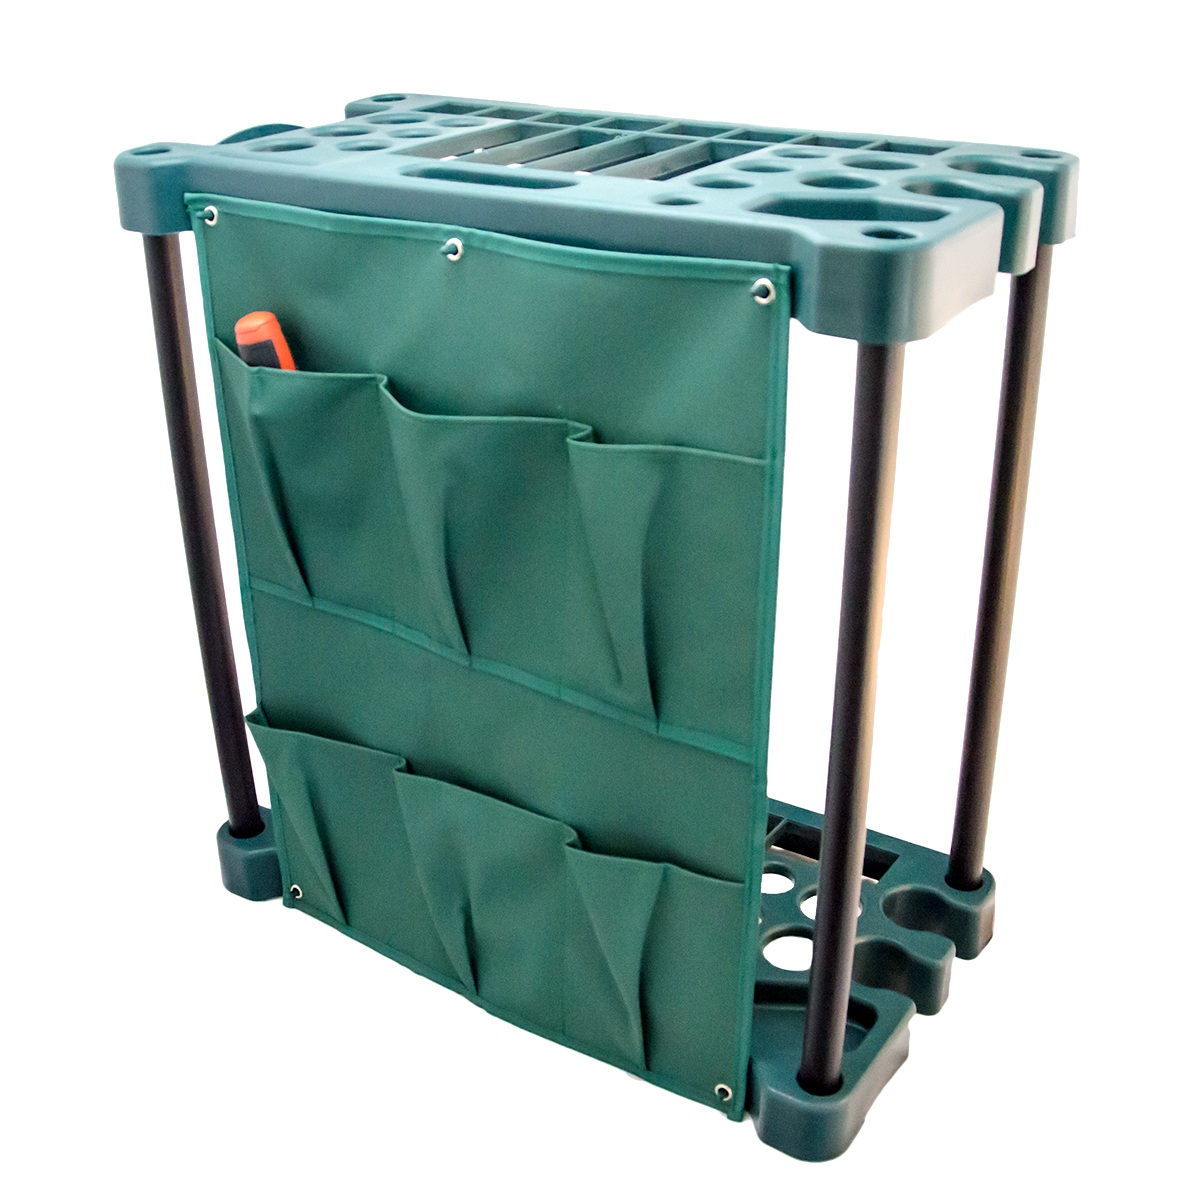 Garden Sheds Jersey Channel Islands garden tool storage rack gardening caddy shed equipment holder